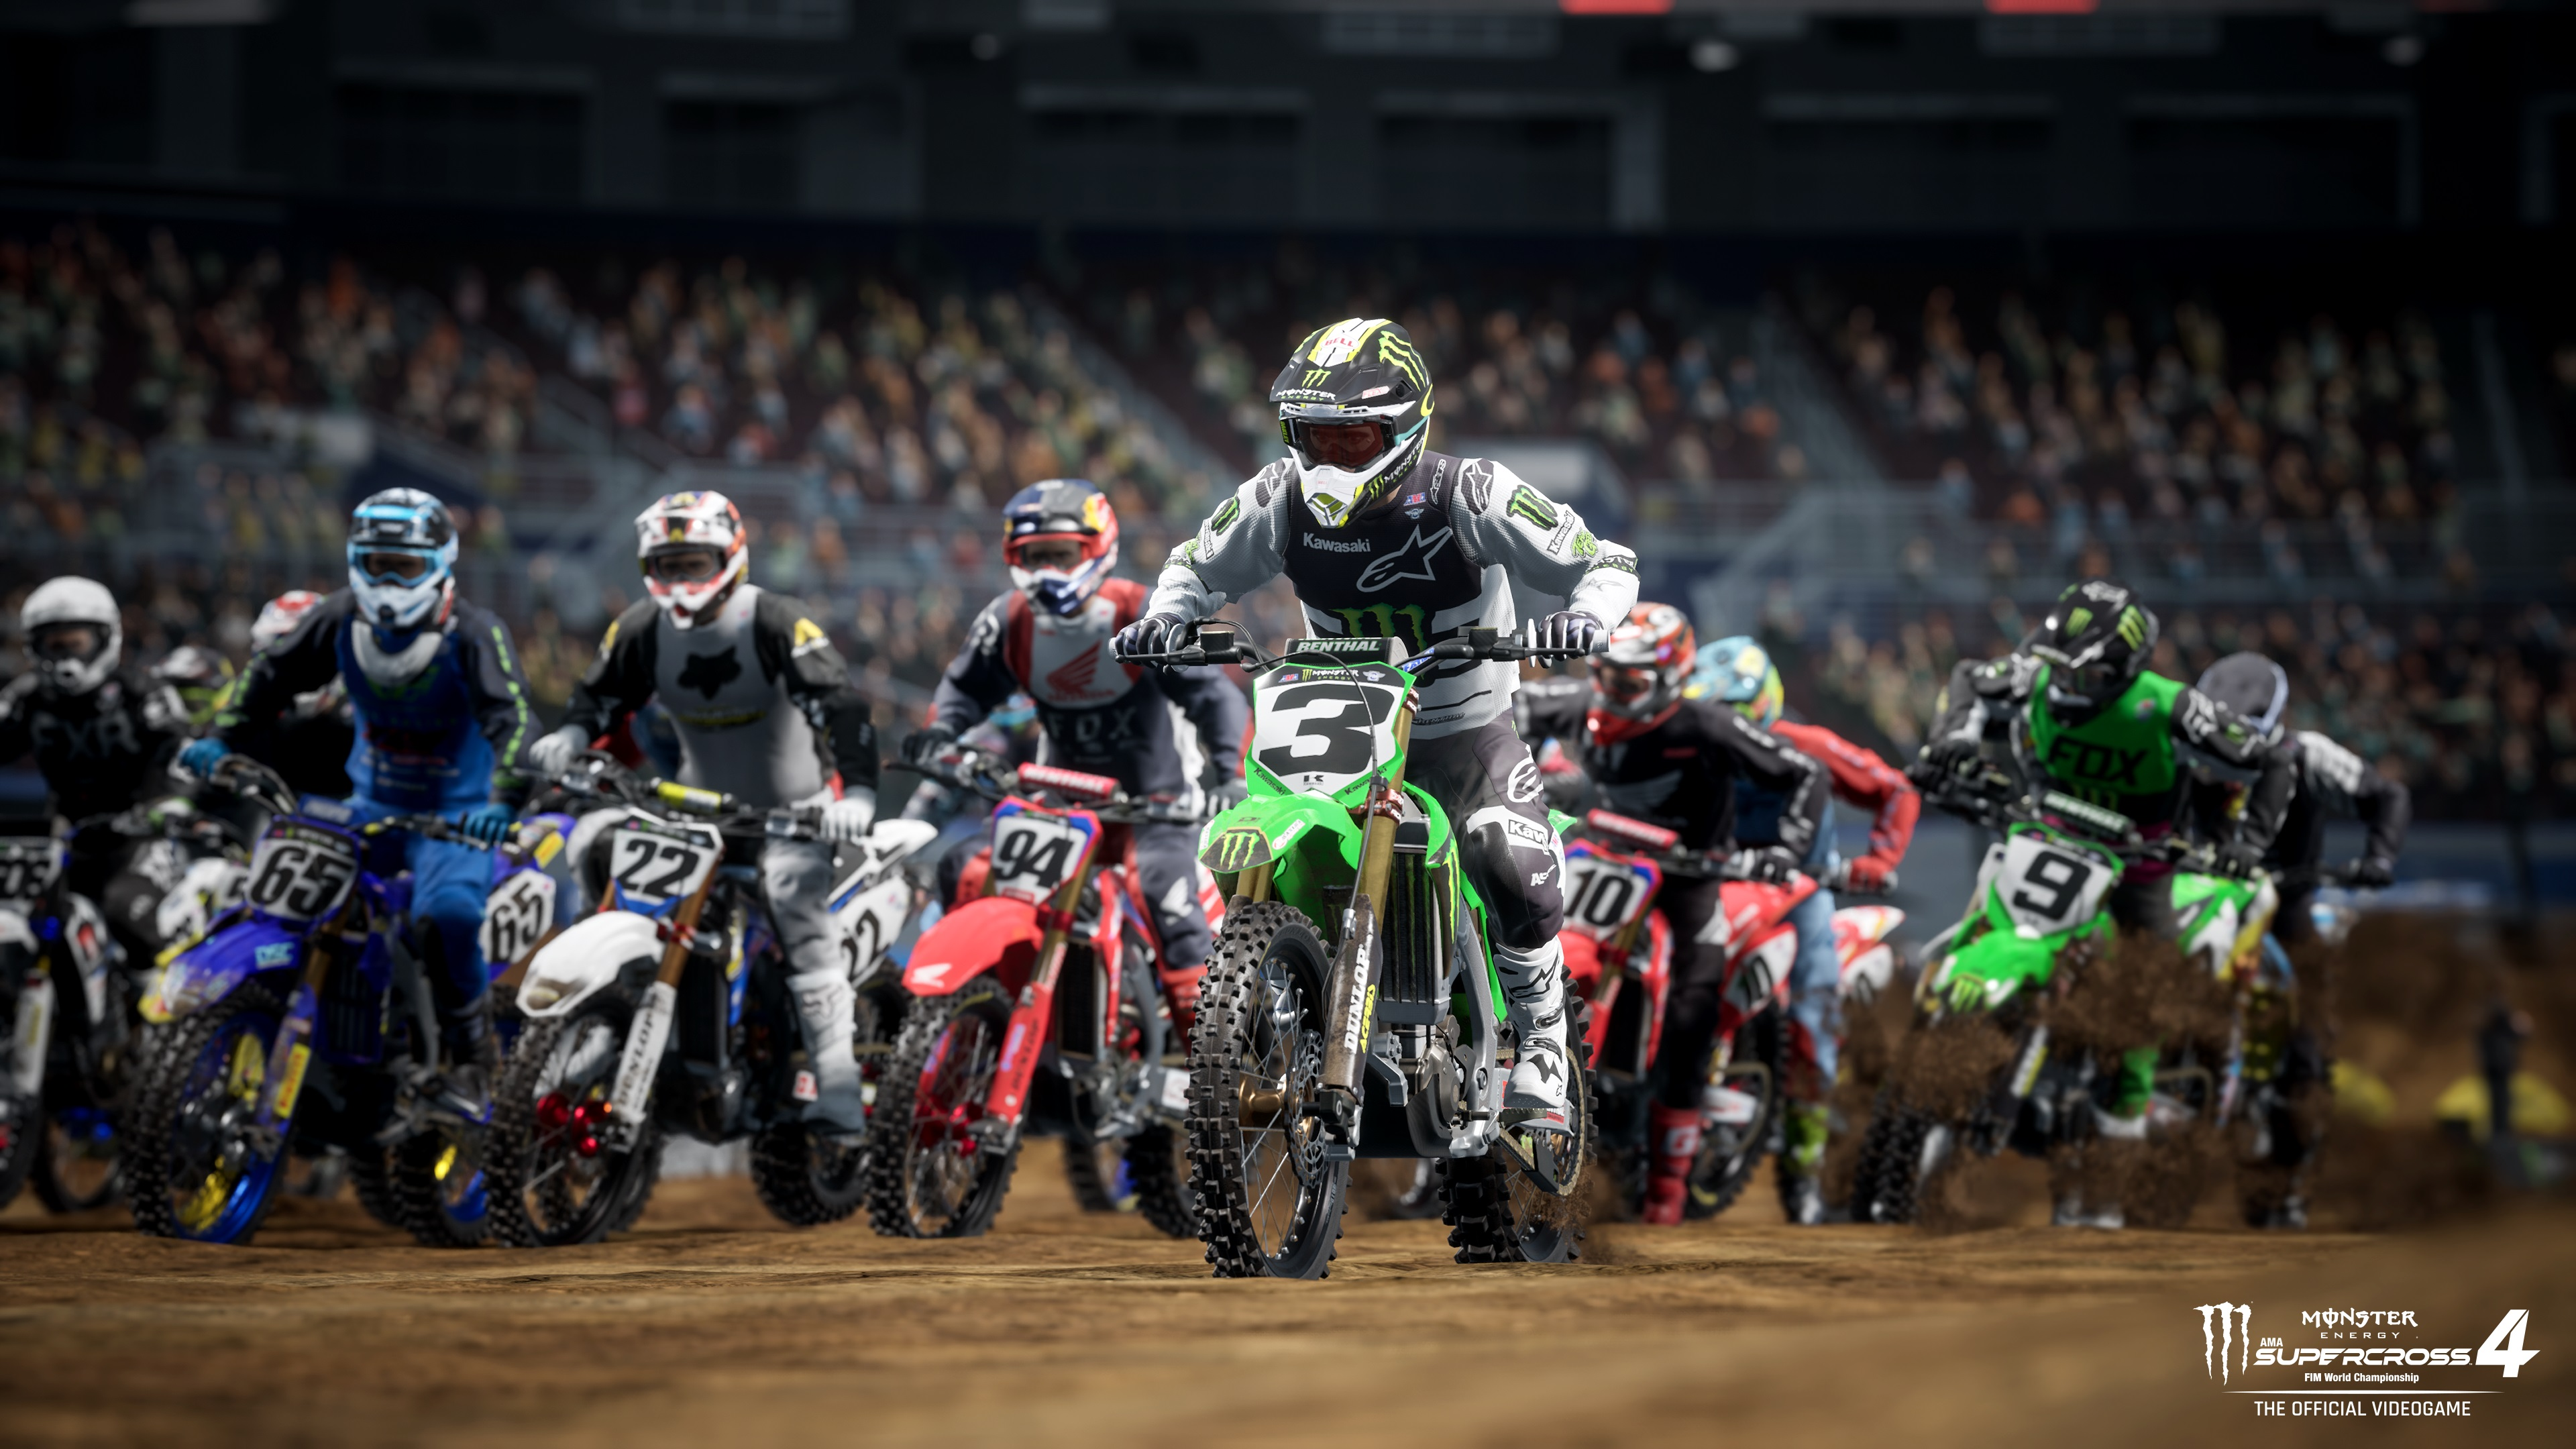 Monster Energy Supercross 4 (Xbox One)